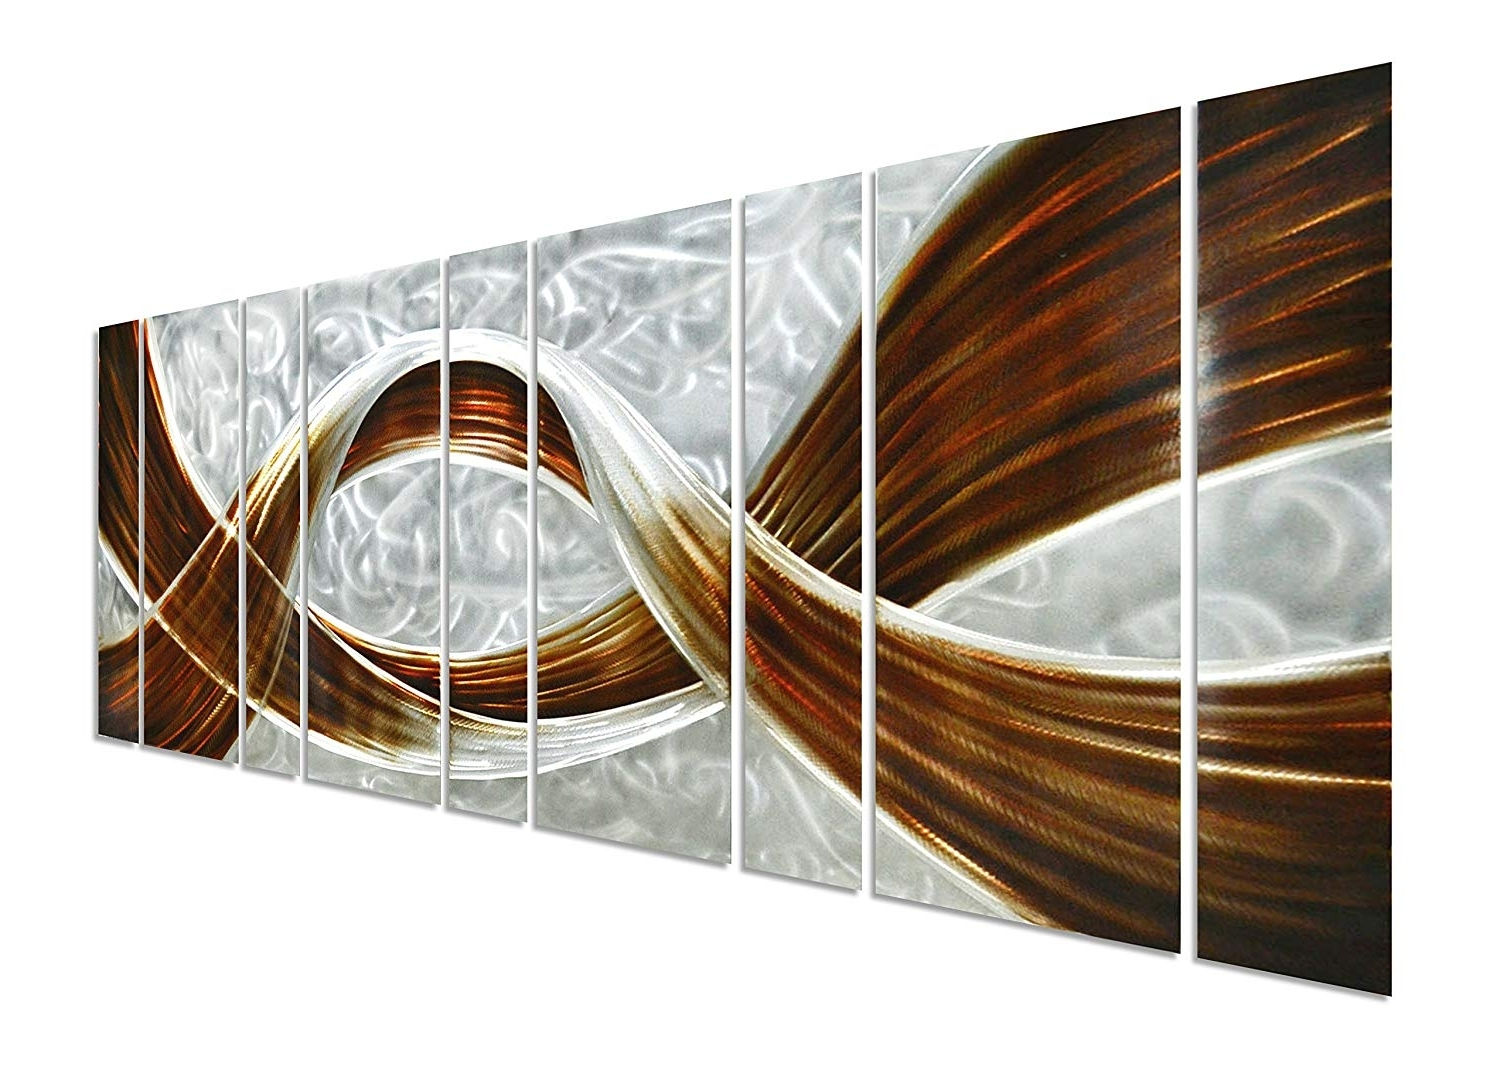 Large Metal Wall Art Pertaining To Most Recent Amazon: Pure Art Caramel Desire Metal Wall Art, Giant Scale (View 6 of 15)